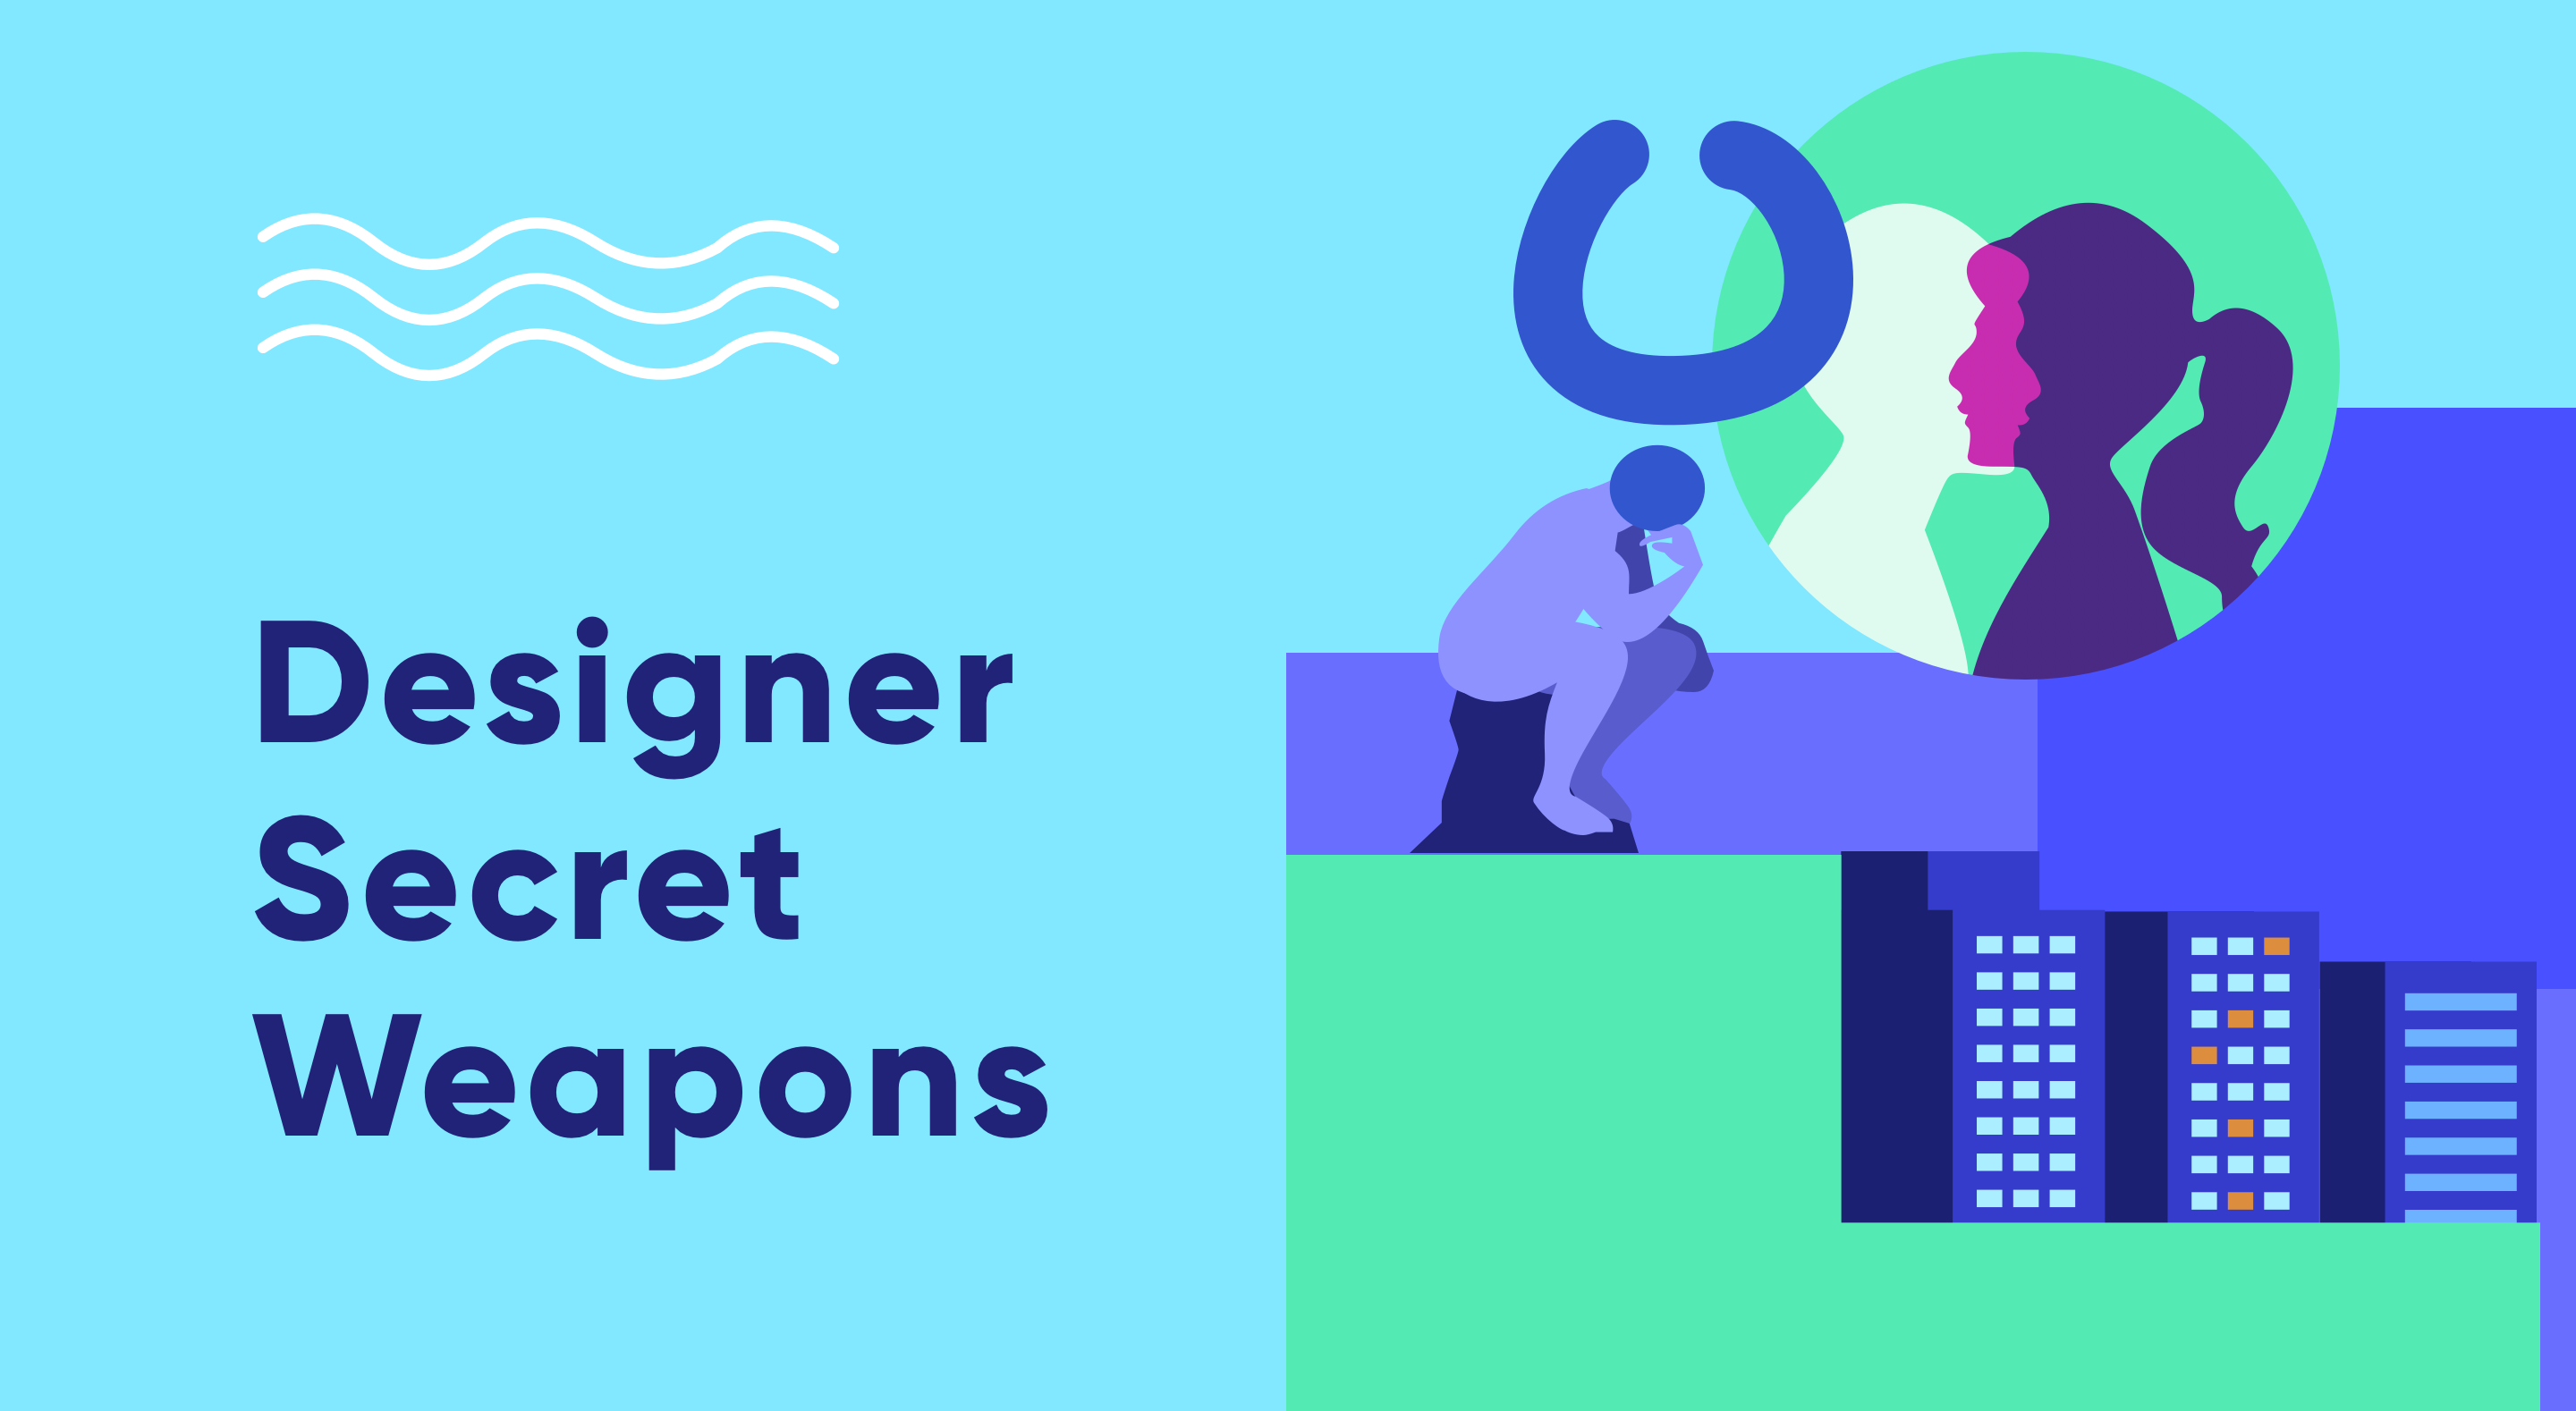 Designer Secret Weapons Anggit Yuniar Pradito Medium